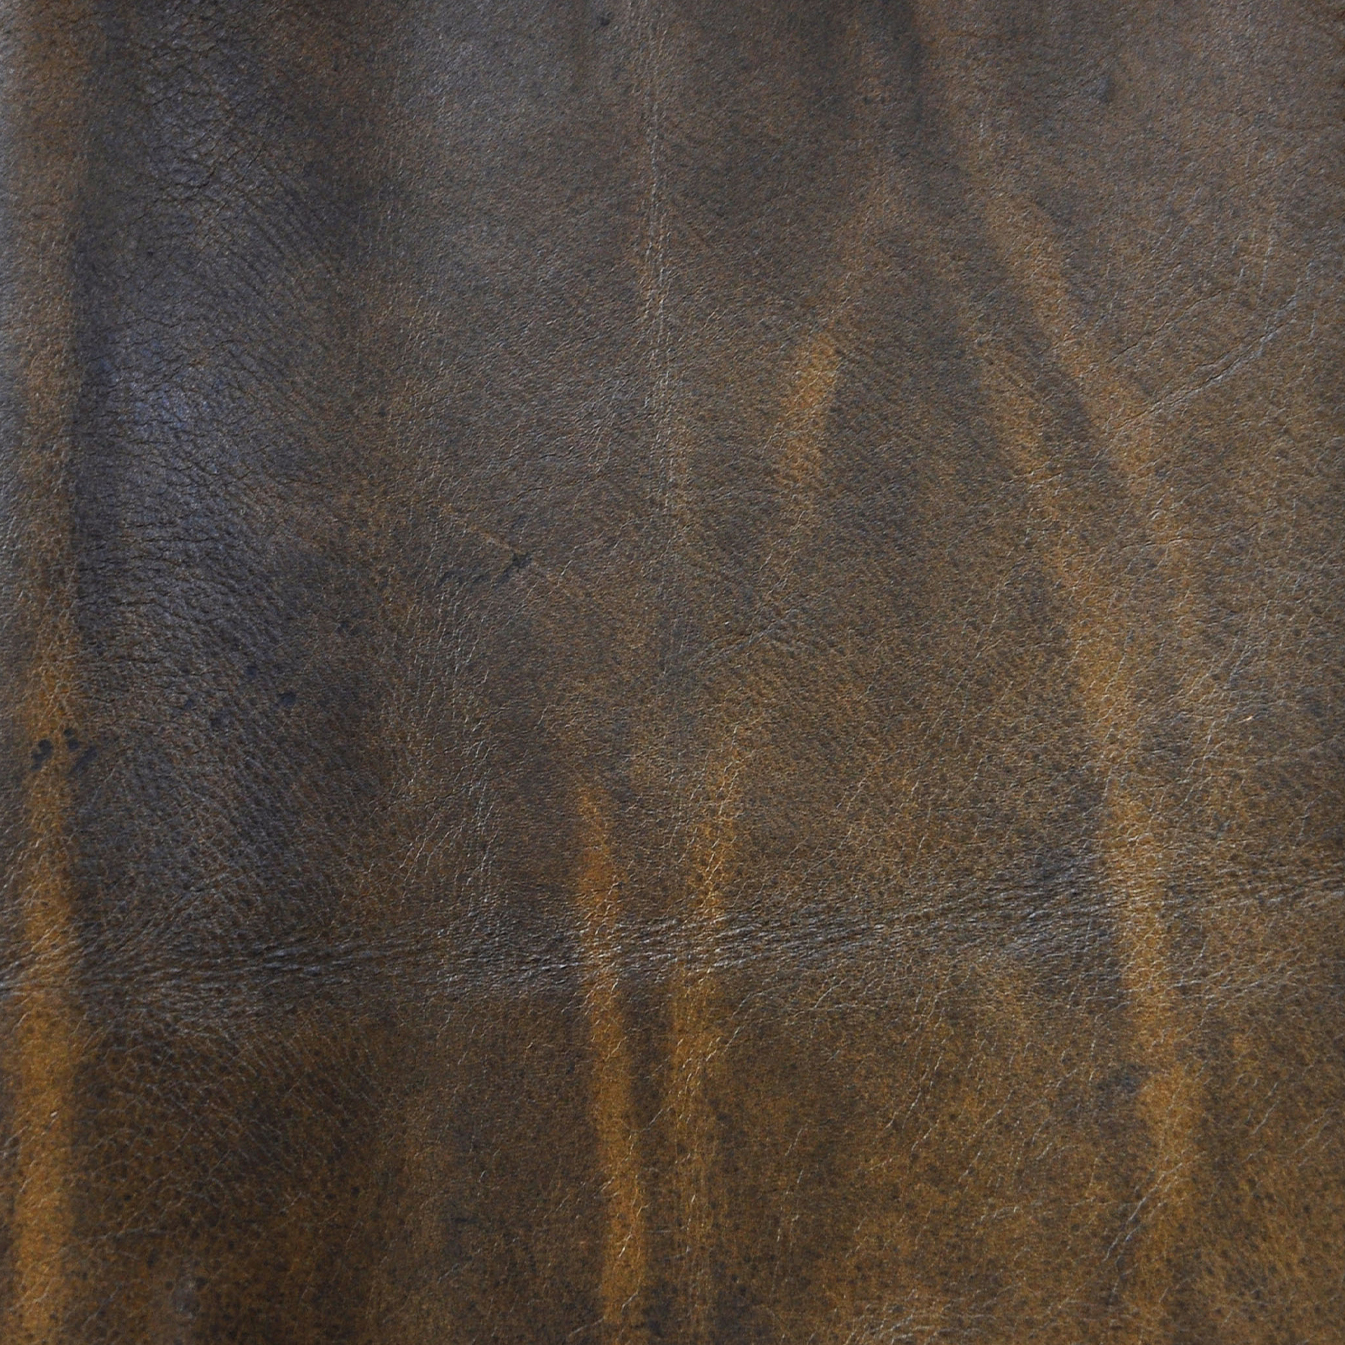 olive leather for furniture upholstery